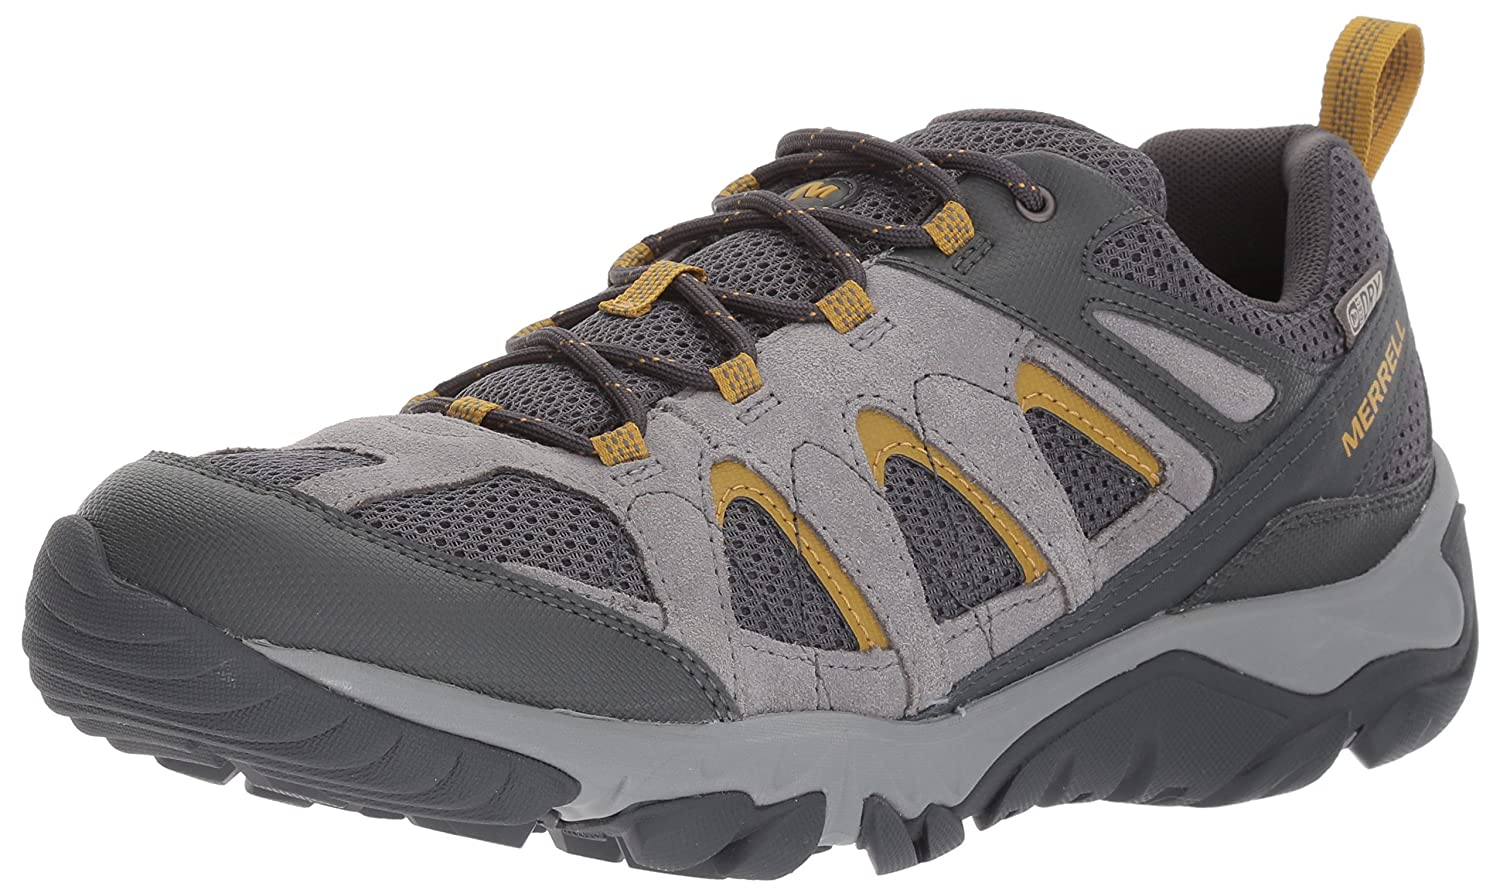 Merrell Men's Outmost Vent Waterproof Hiking Shoe B01N6GYBUN 07 M US|Frost Grey